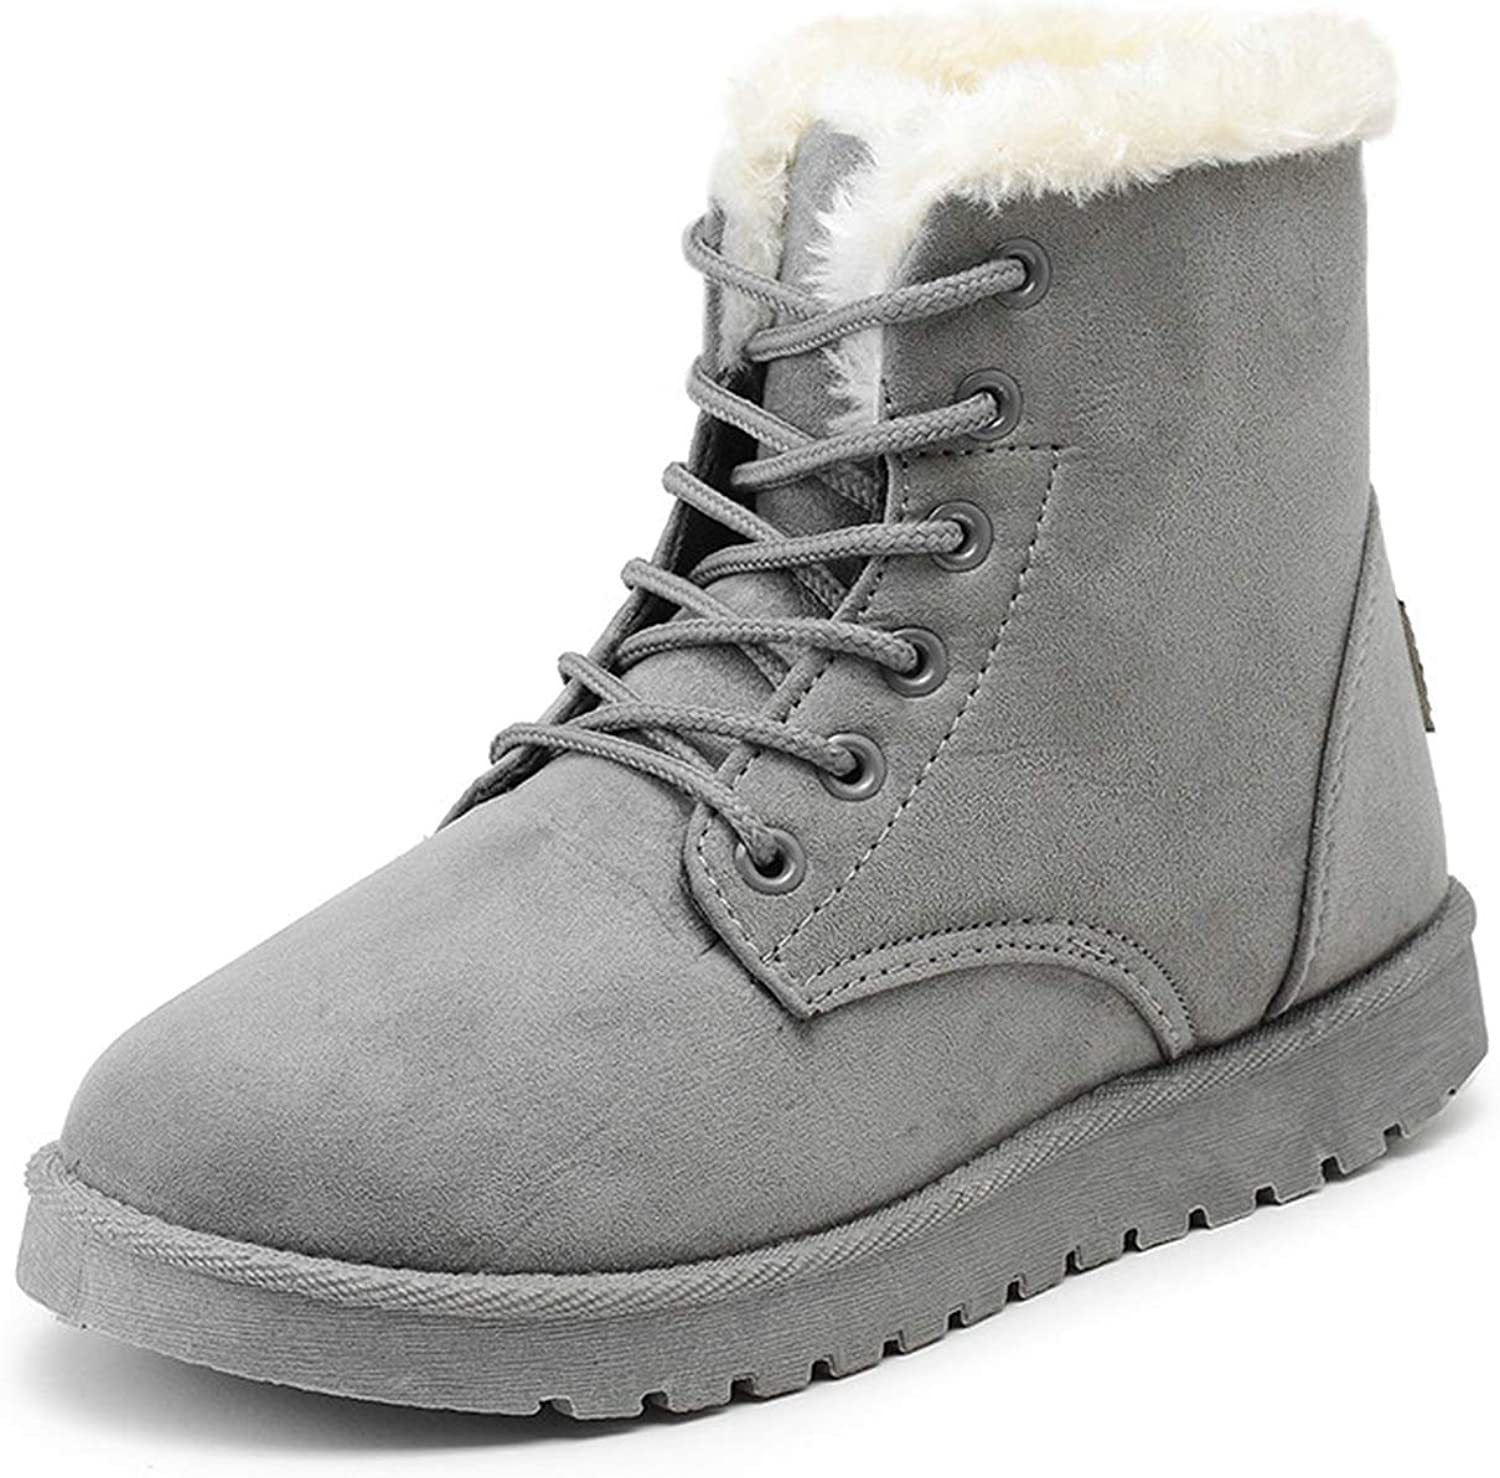 Big Incisors Women Snow Boots Flat Lace Up Winter Ladies Warm Shoes Flock Fur Womens Suede Ankle Boots Female,Gray,4